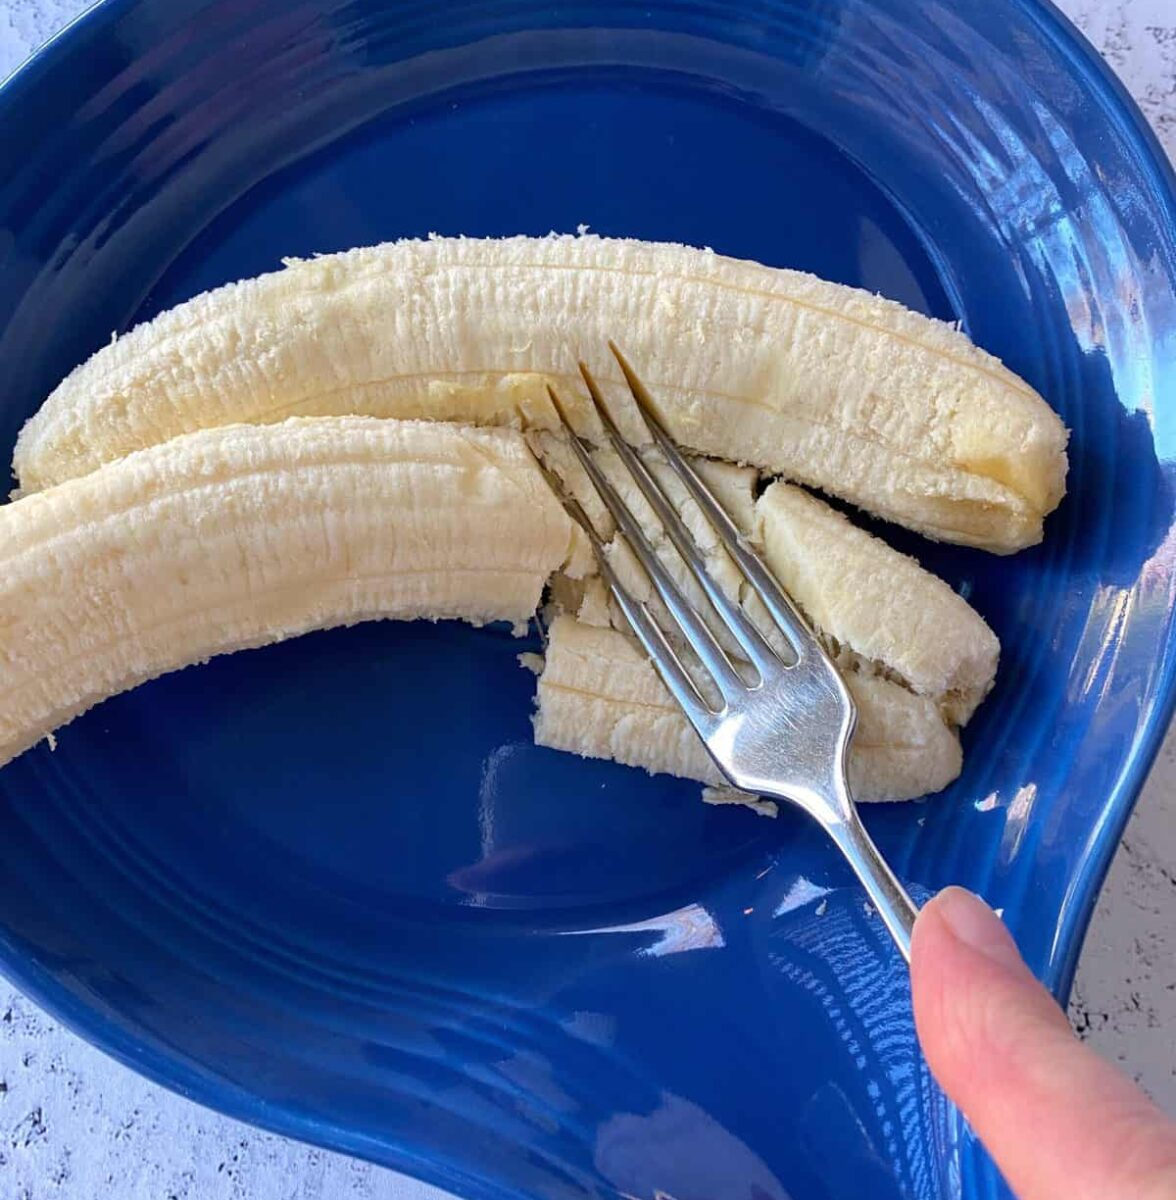 Two bananas in a dish, with a fork mashing them.